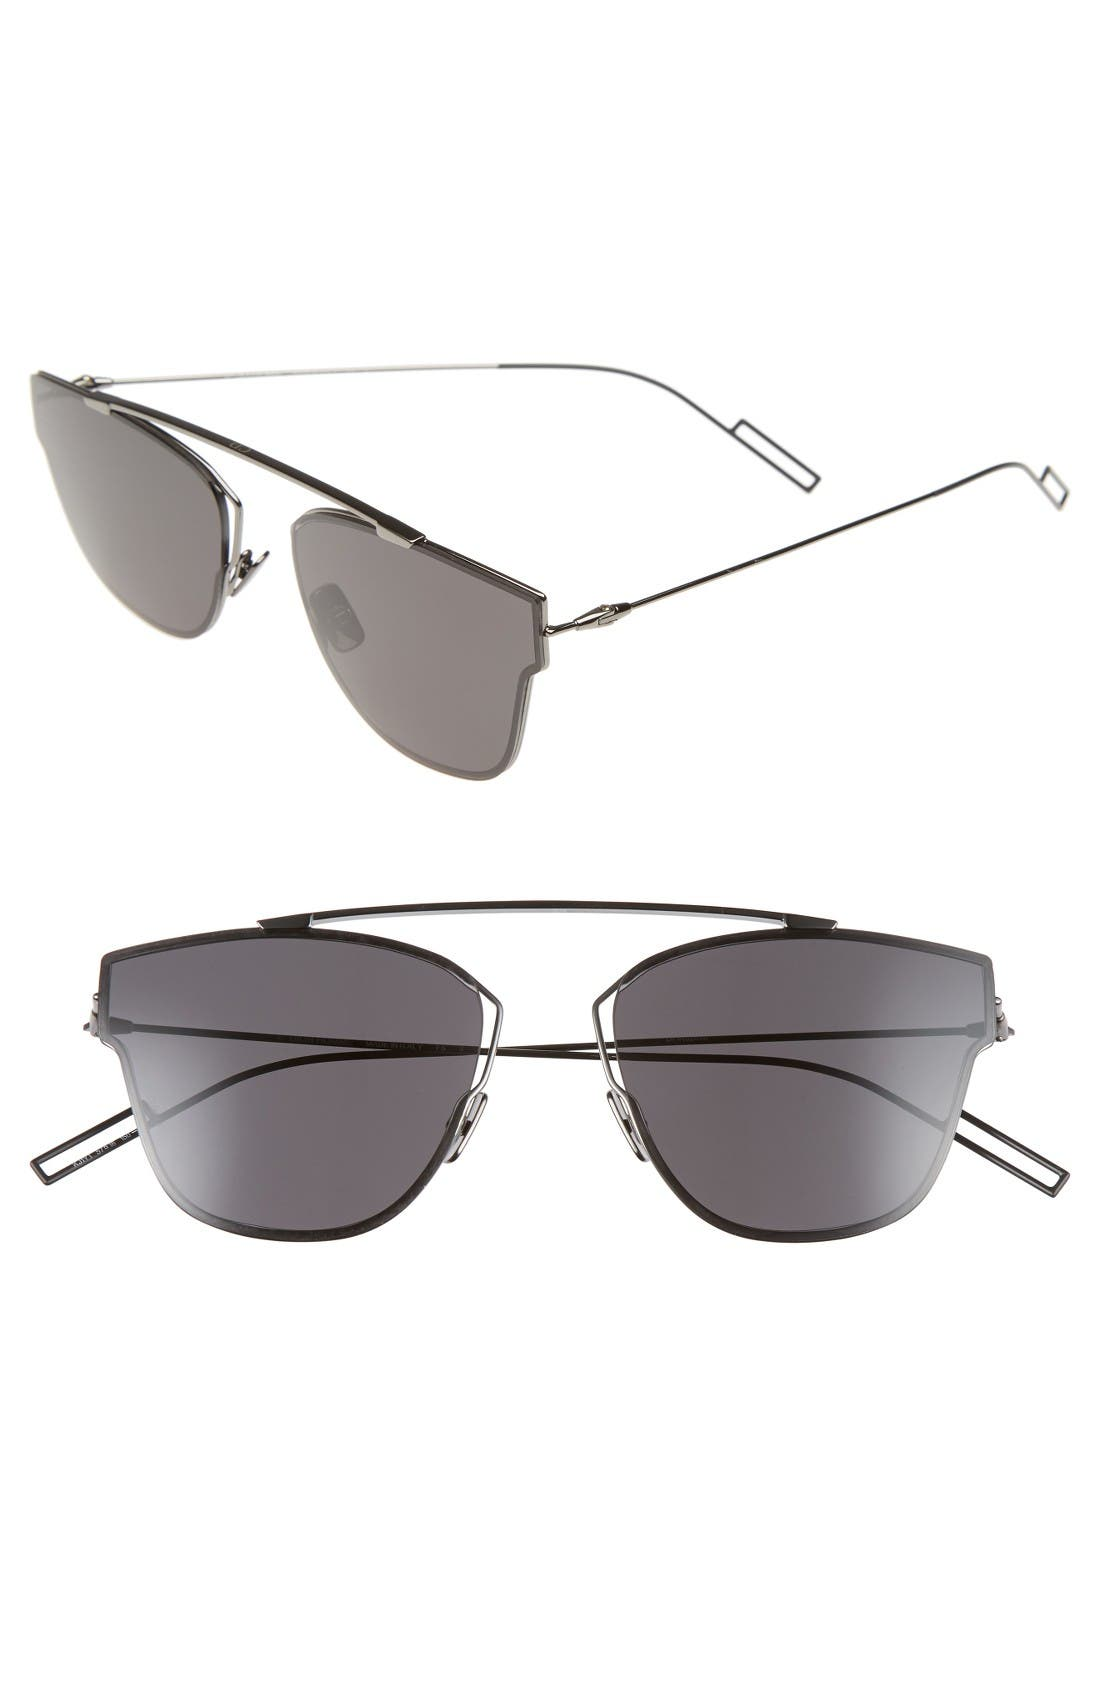 Dior Homme 57mm Semi Rimless Sunglasses